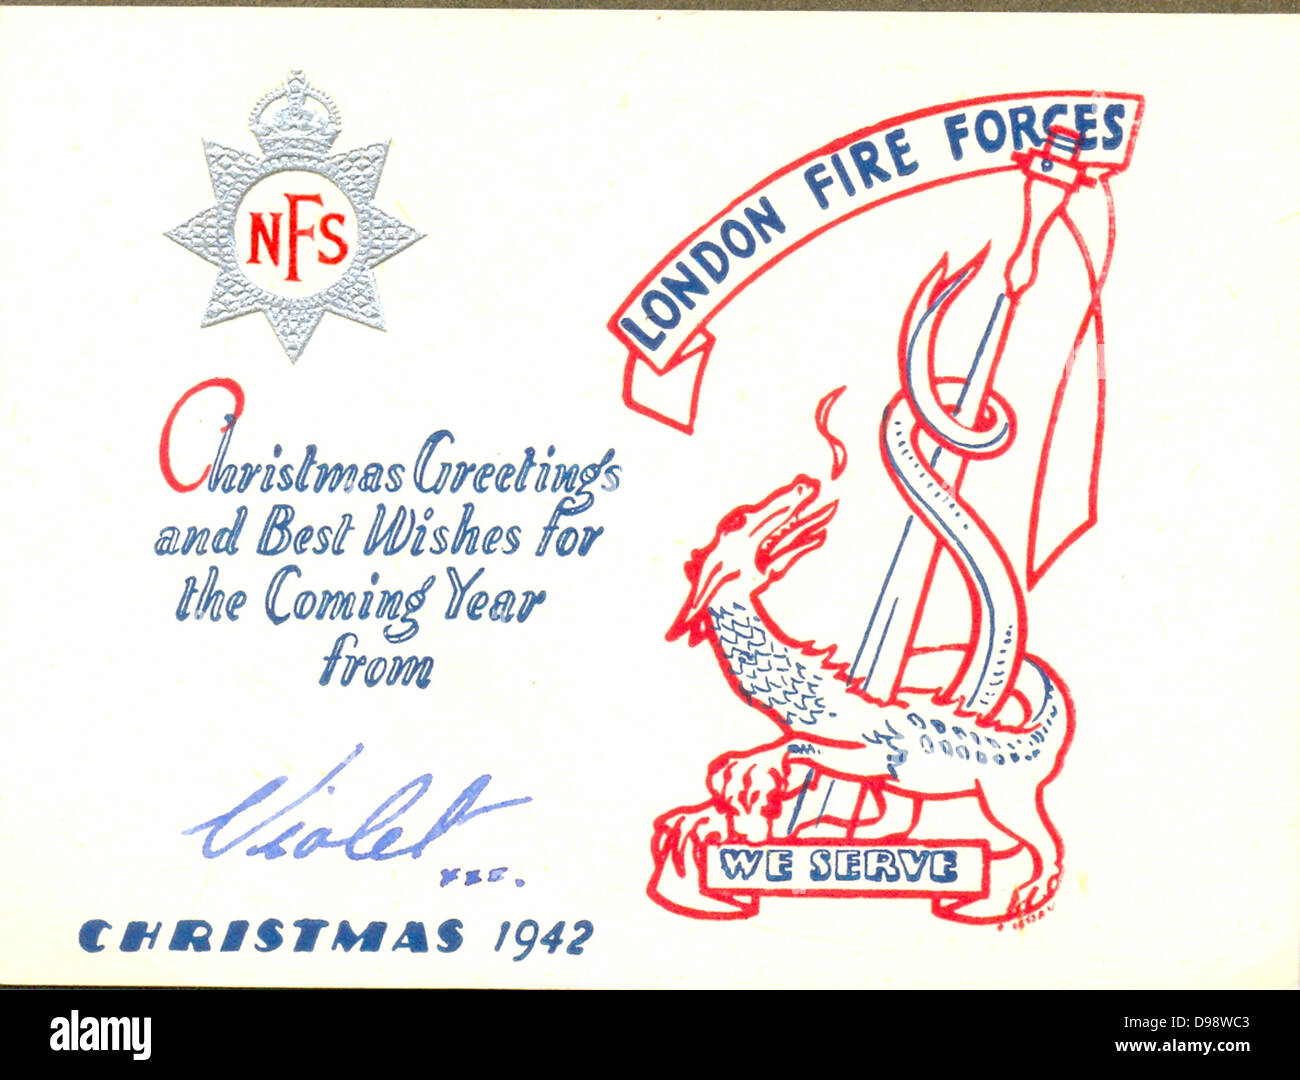 World War Two Christmas greeting card from the London Fire Forces - Stock Image